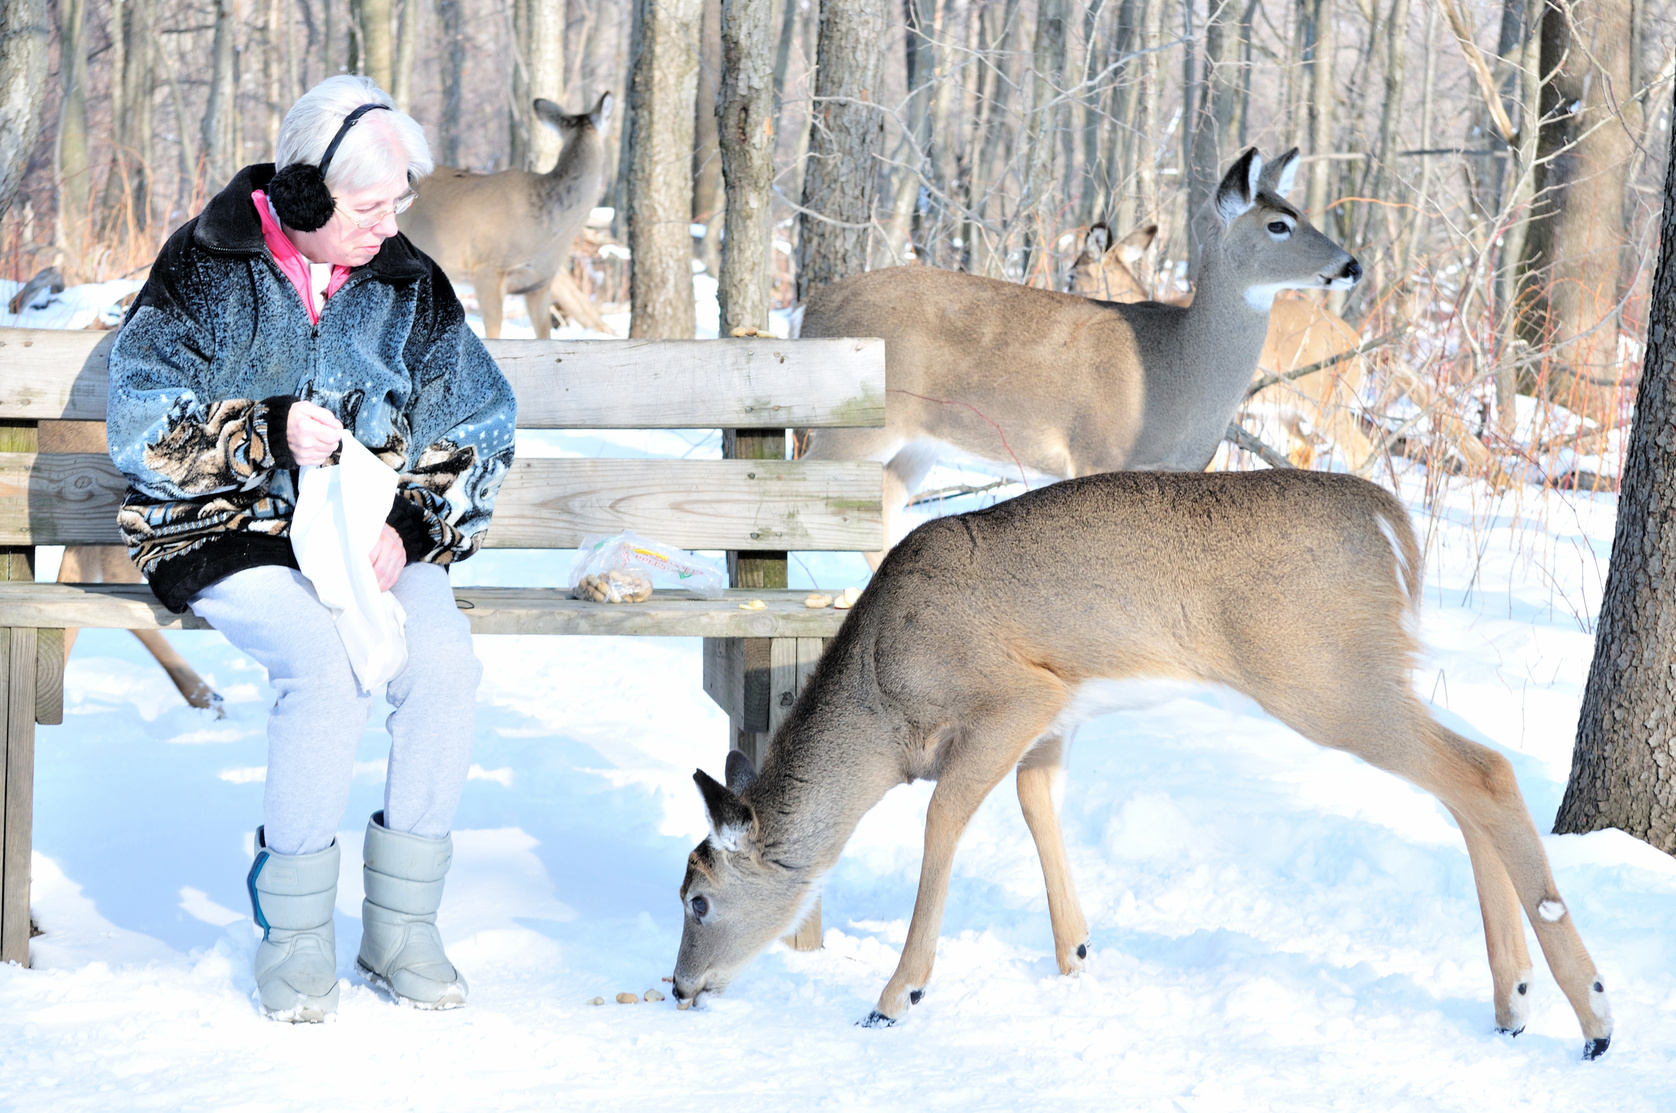 Elderly Woman Feeding Deer